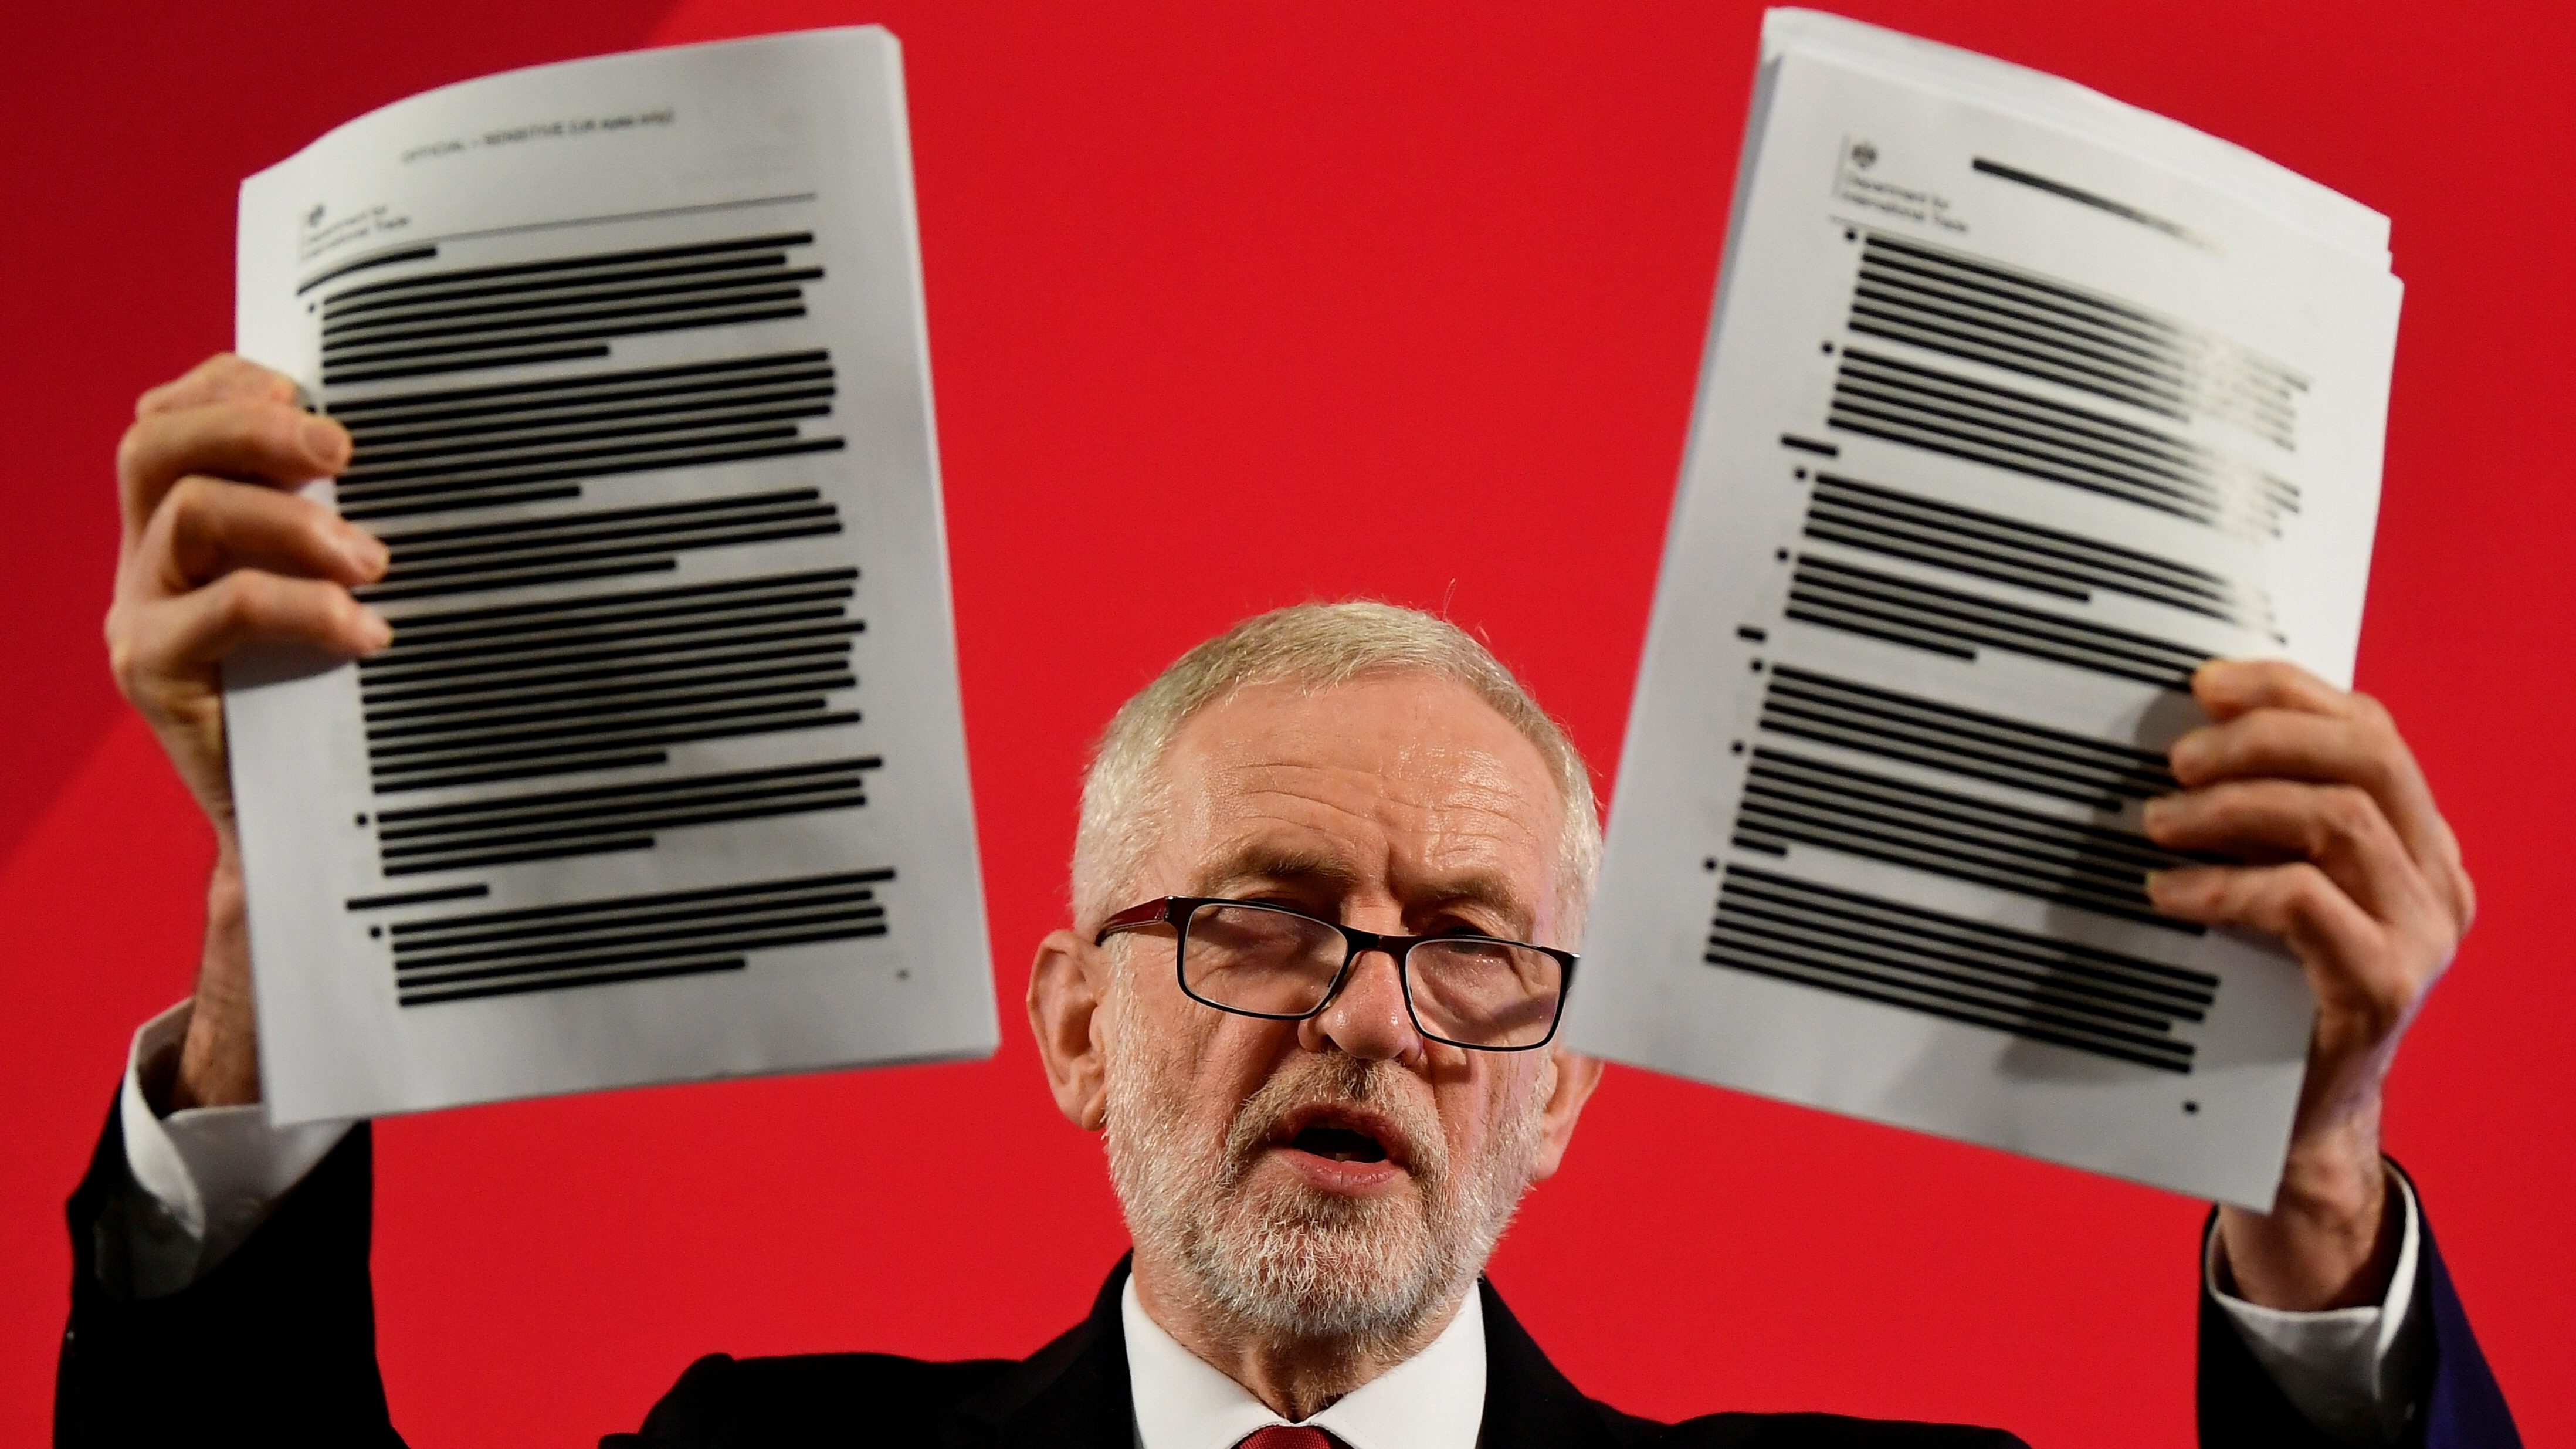 Jeremy Corbyn holds redacted documents